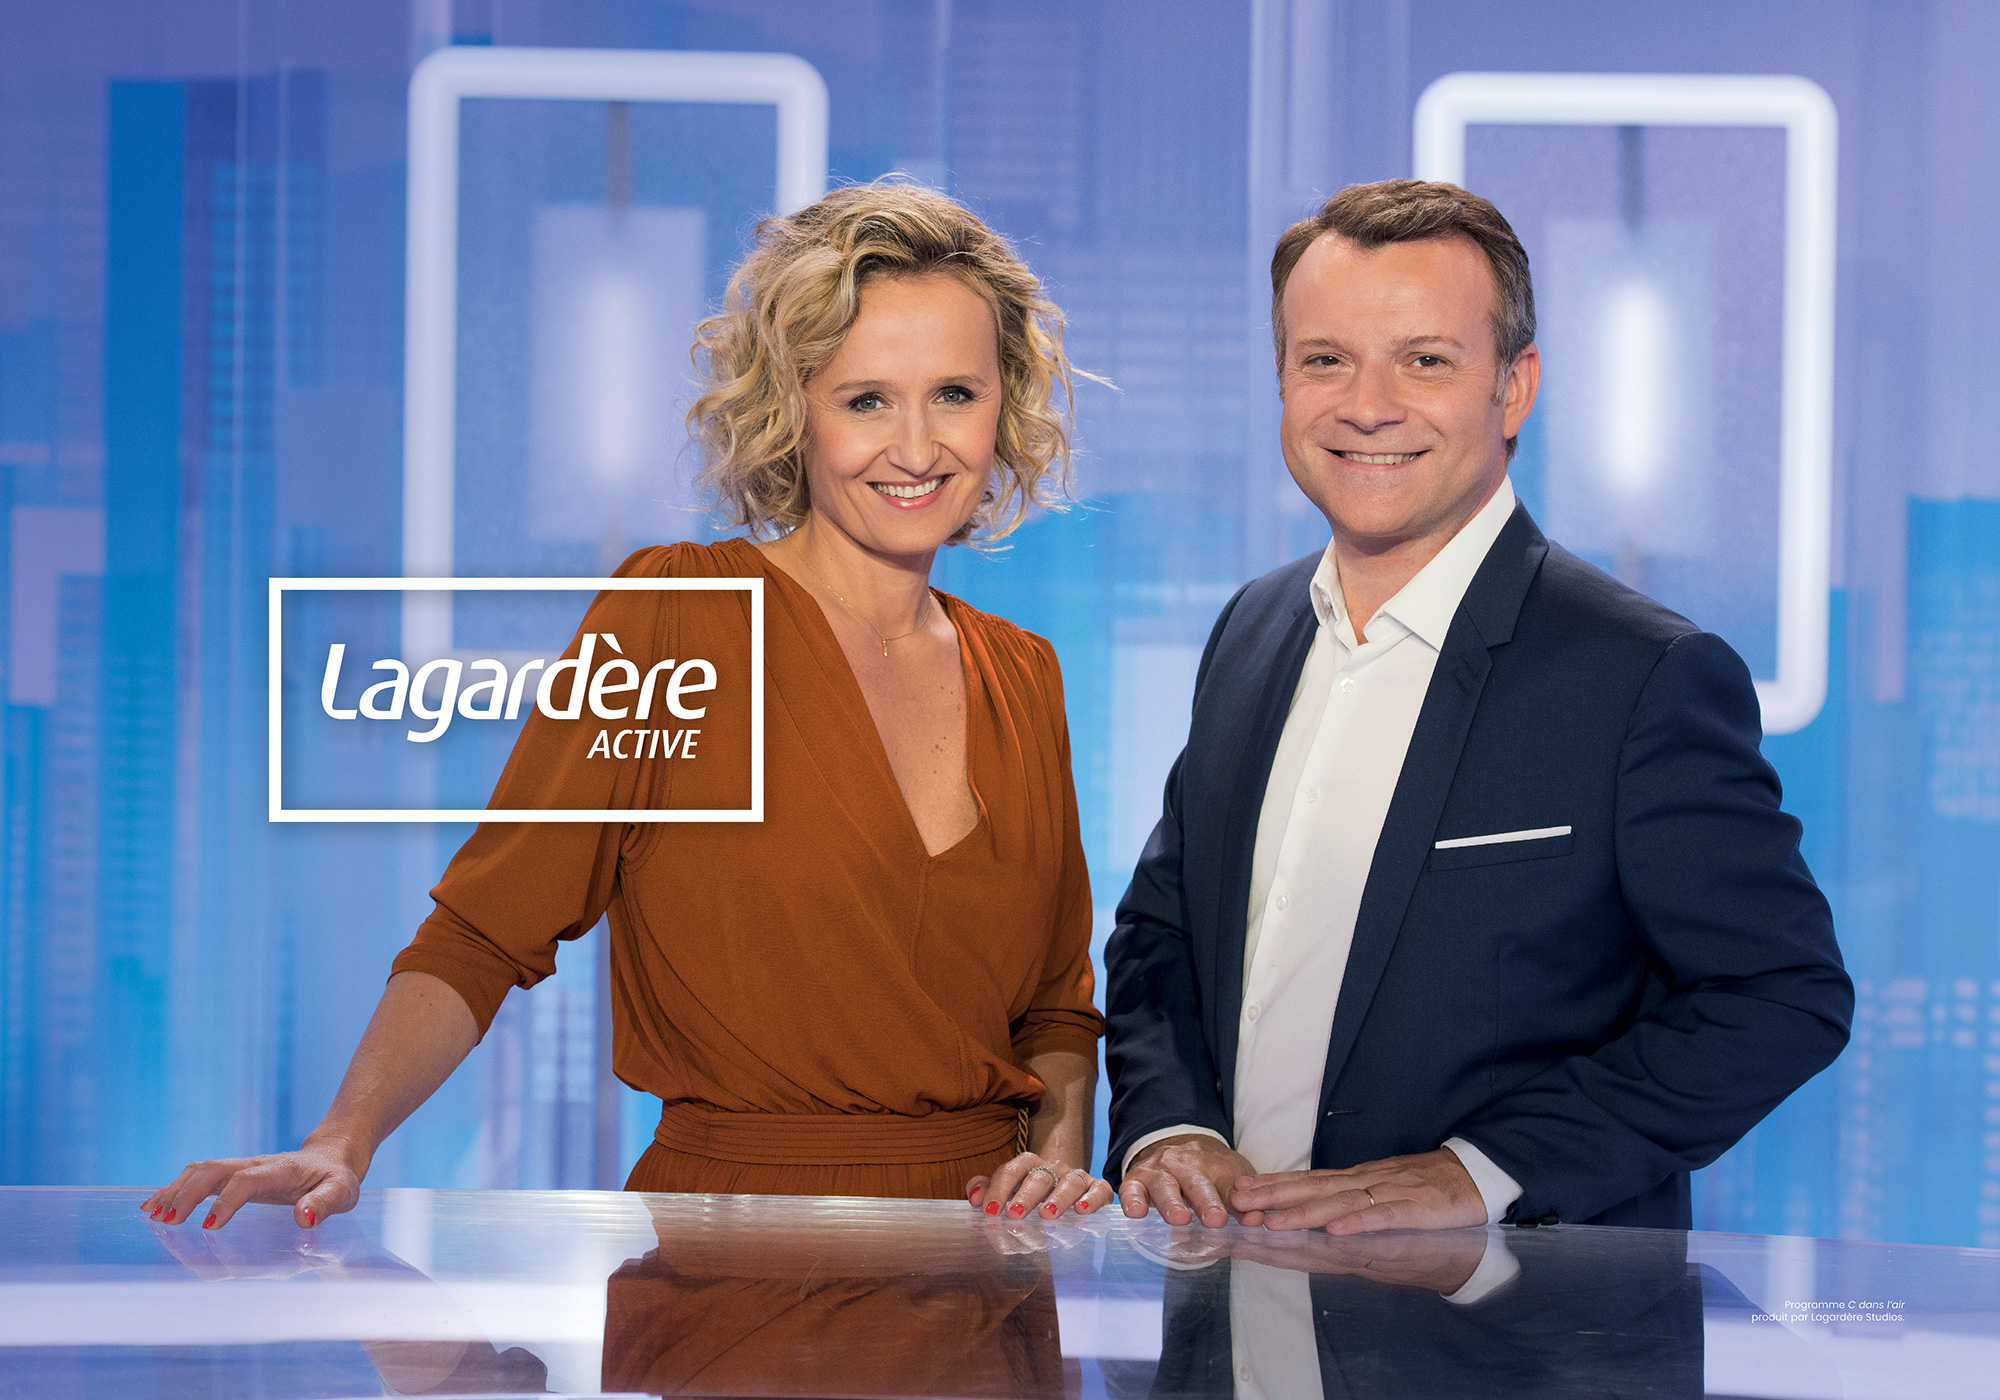 Lagardère Active – Strategy